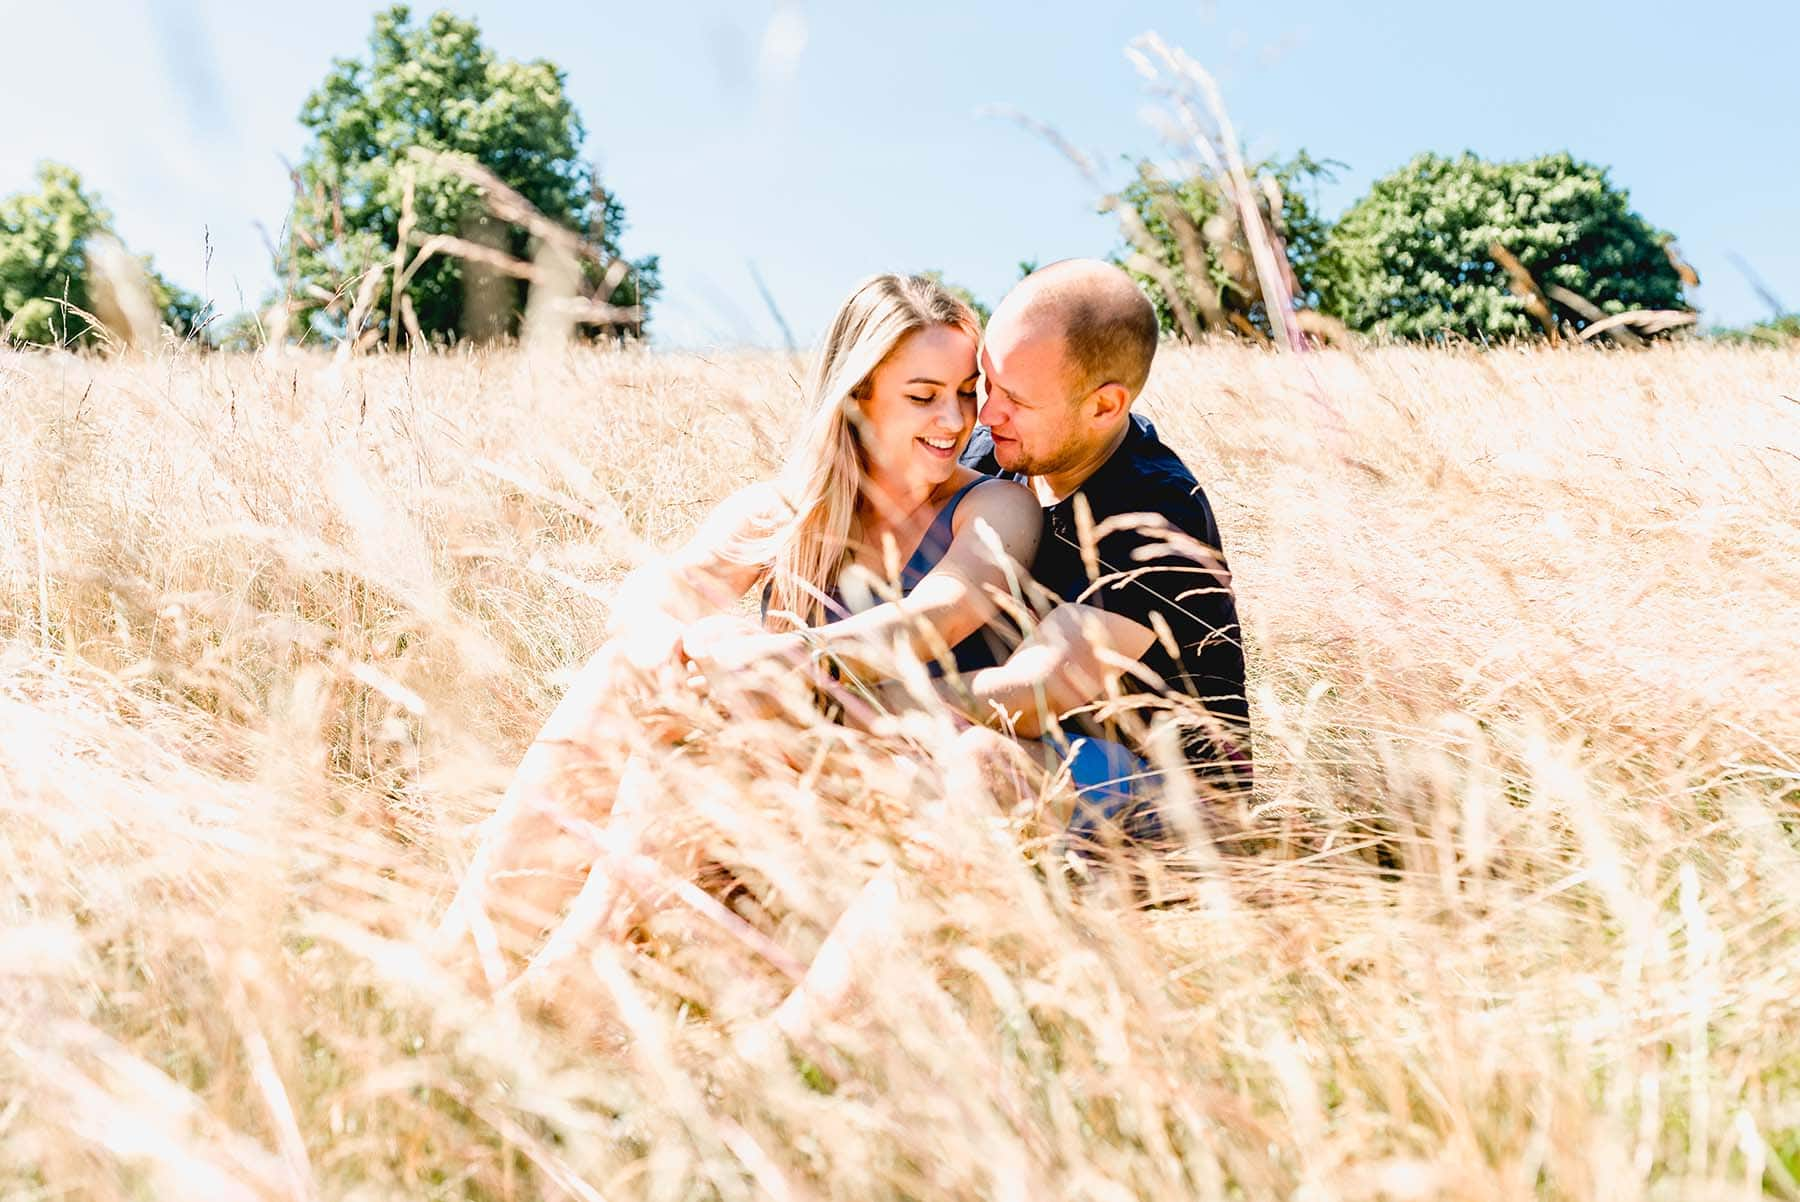 Sutton Park Engagement Shoot with Sadie and James